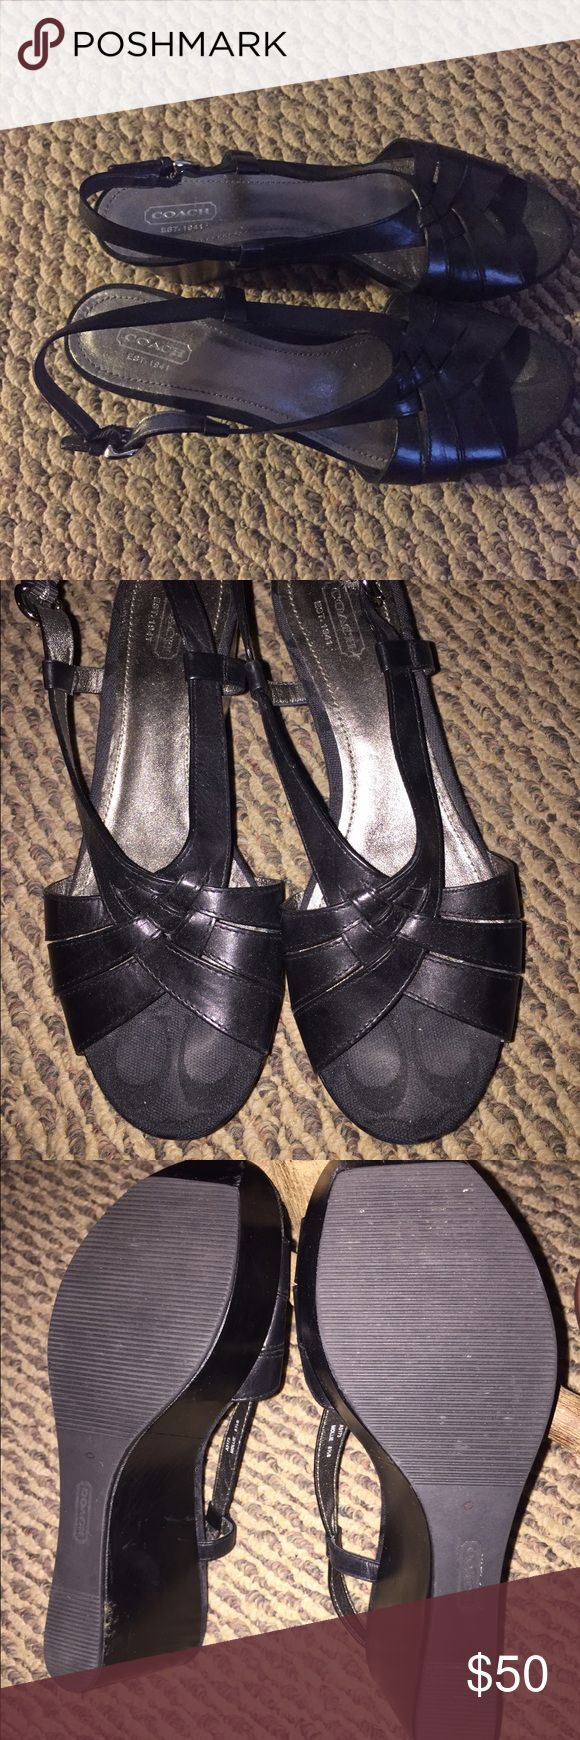 Coach Mollie slingback sandals. Black. Size 8.5. Coach Mollie black sling backs. Size 8.5. Made in China. Leather upper. Coach Shoes Sandals